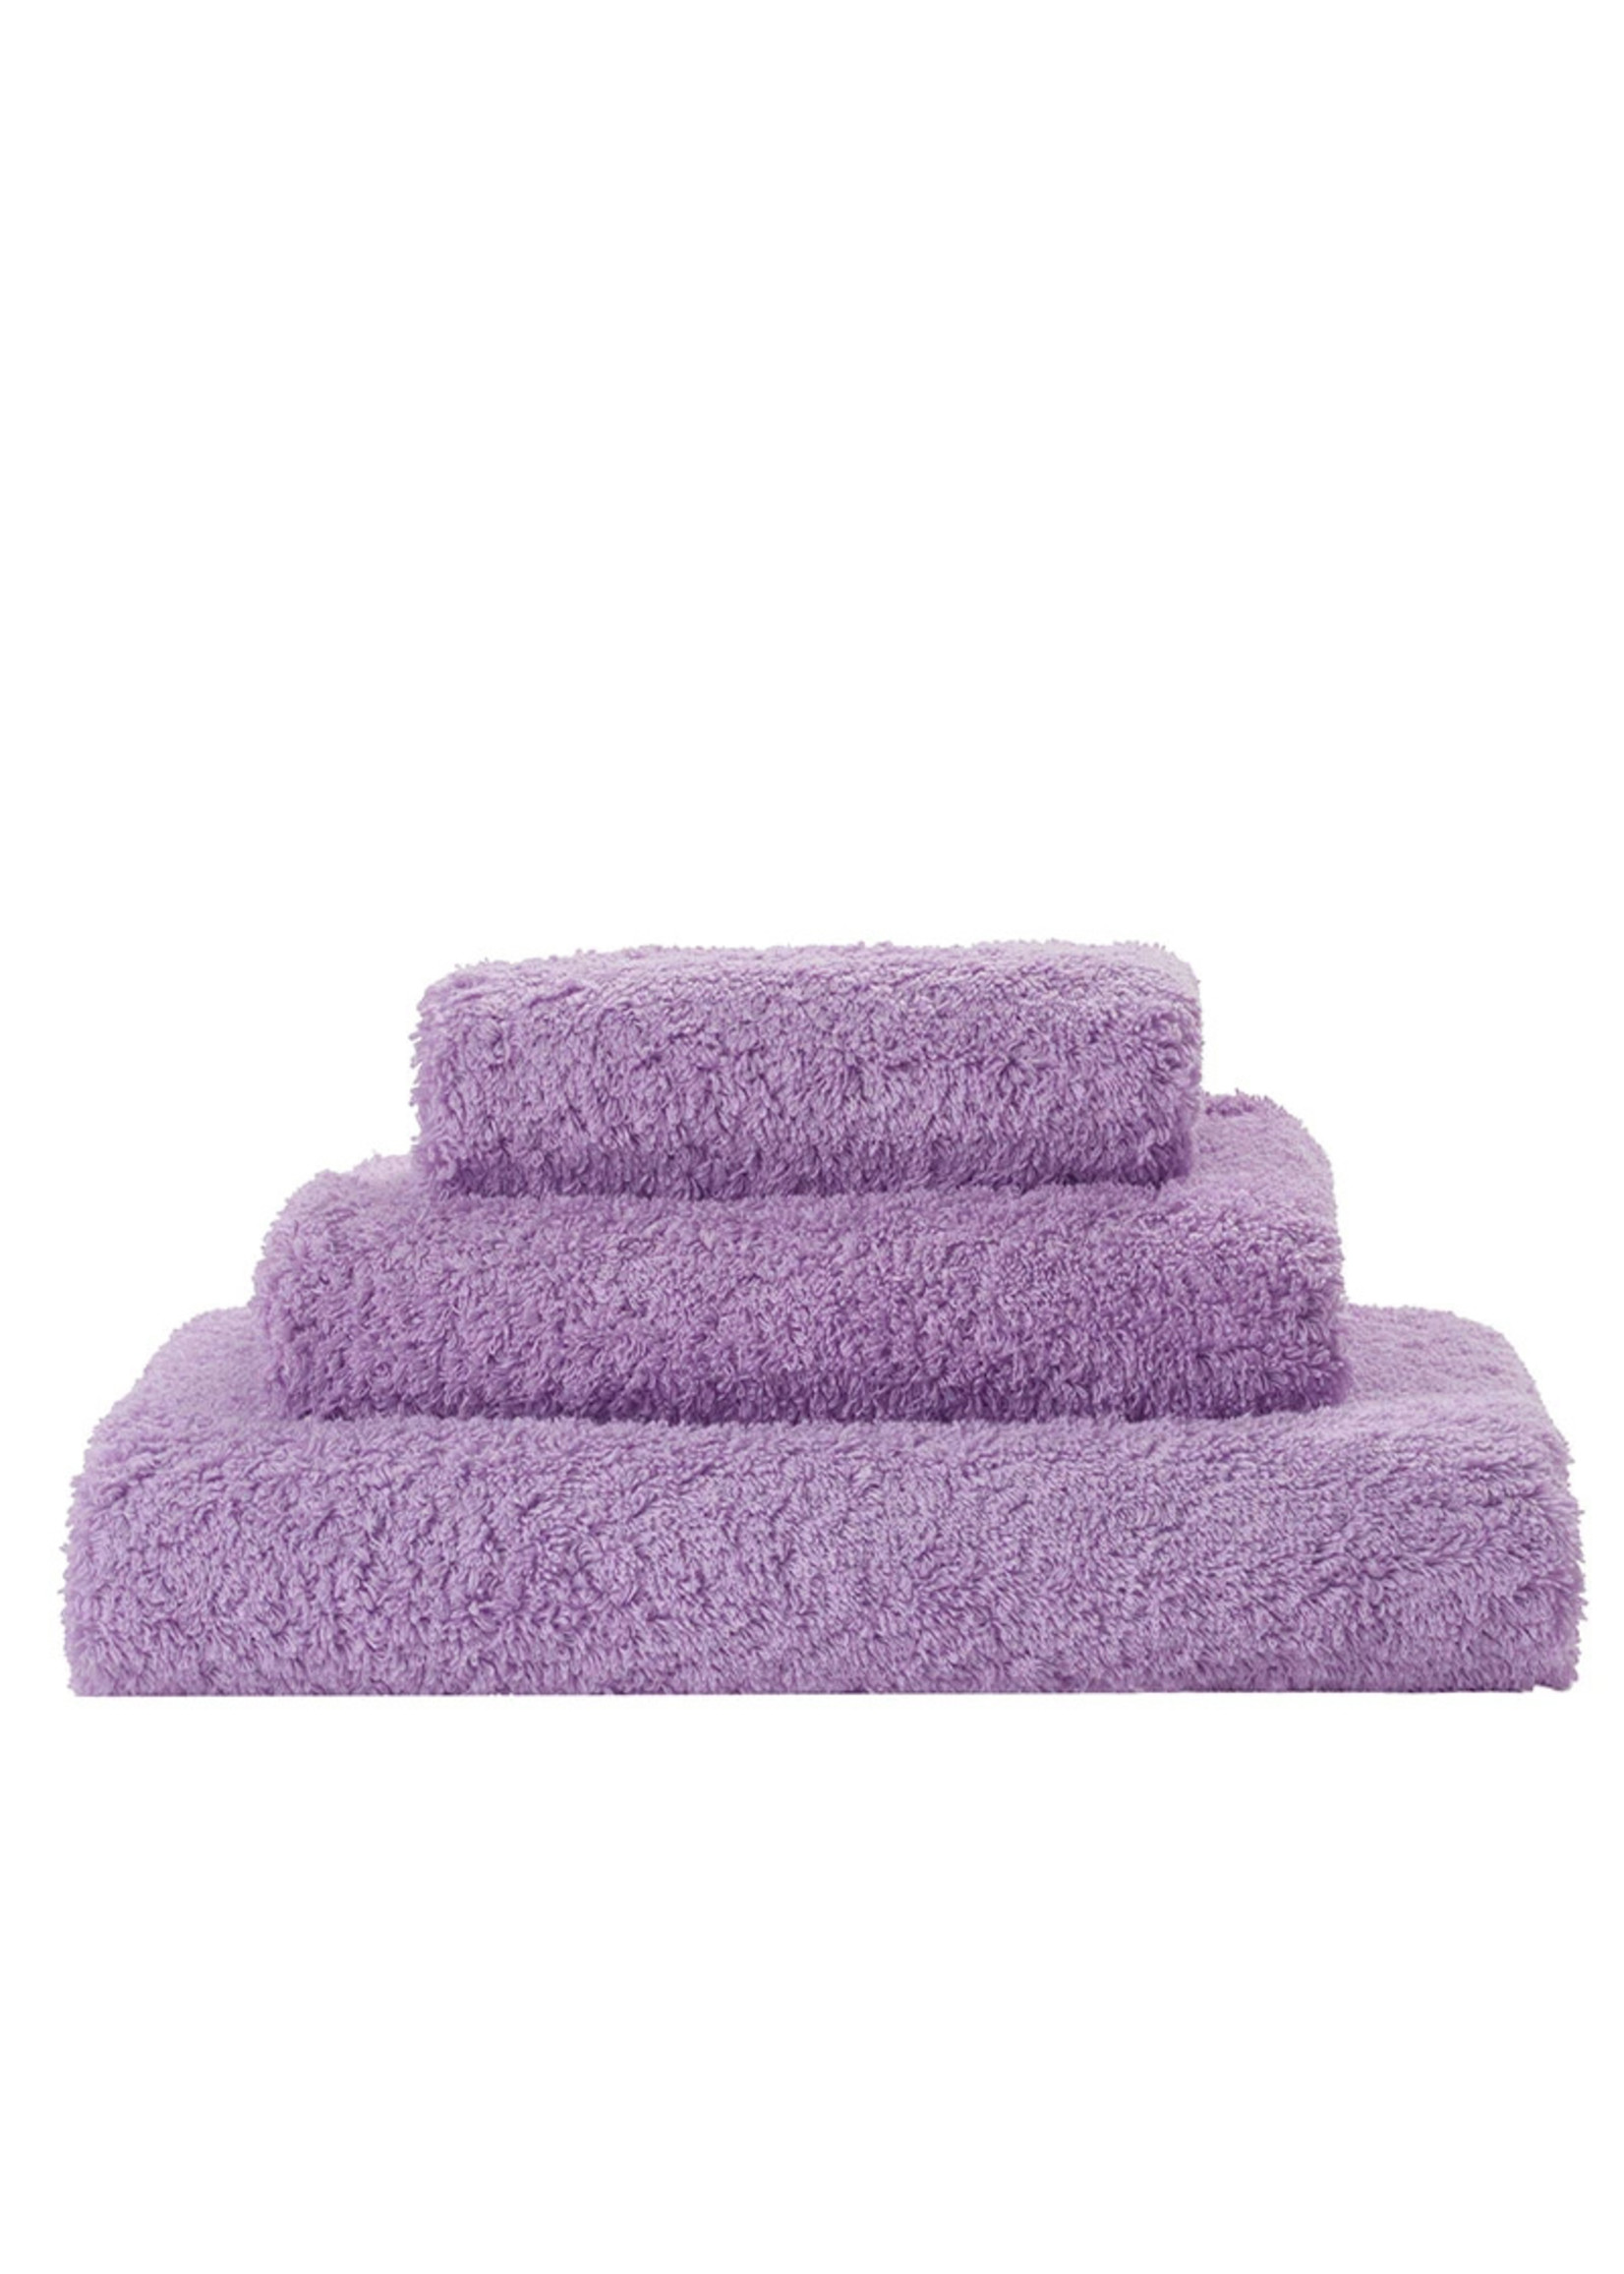 Abyss & Habidecor Super Pile Lupin Towels